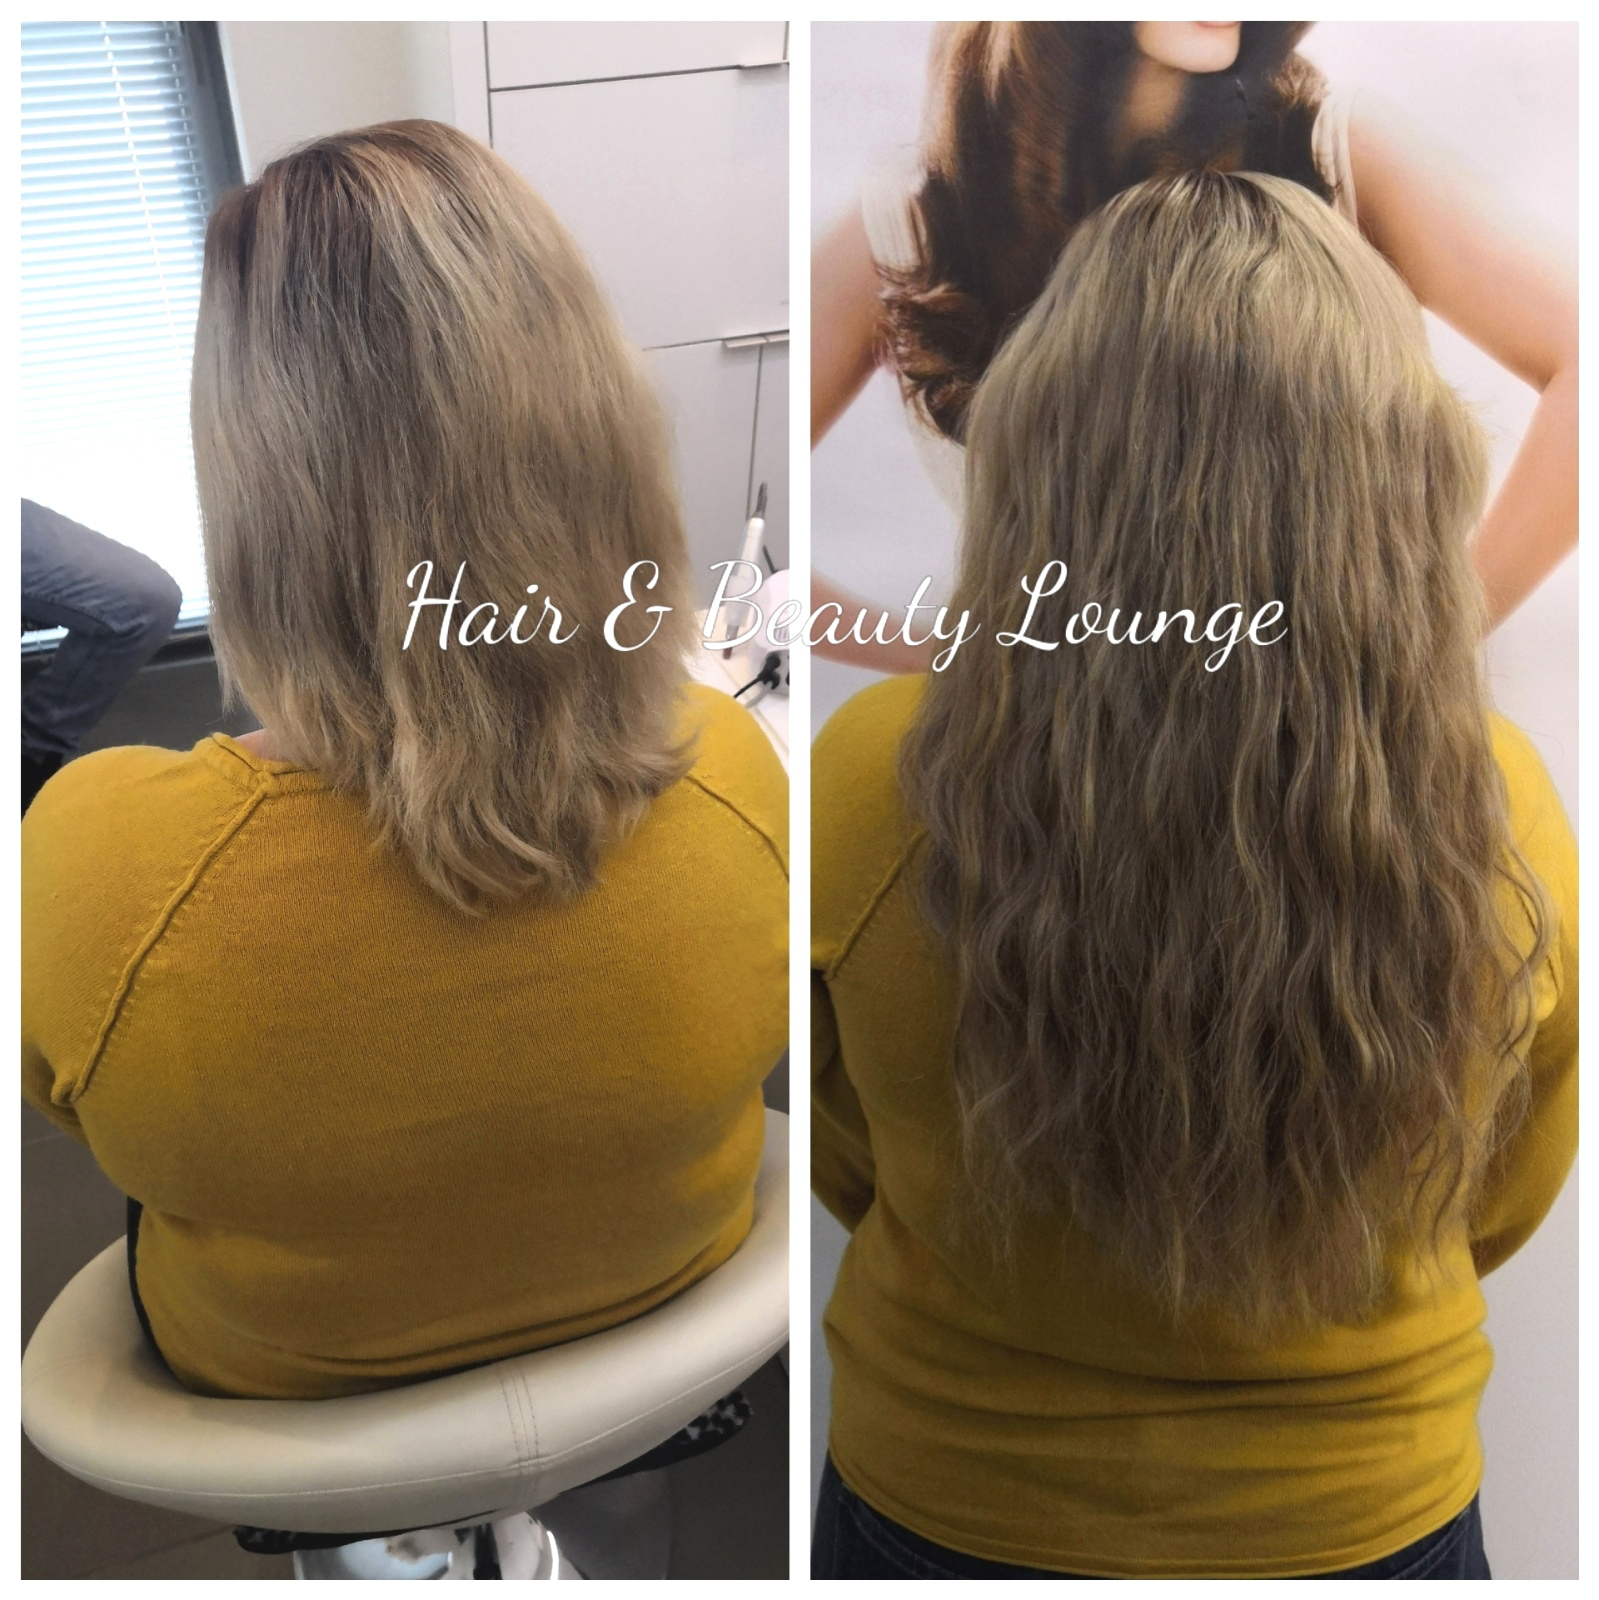 Hairextensions 23-08-2019